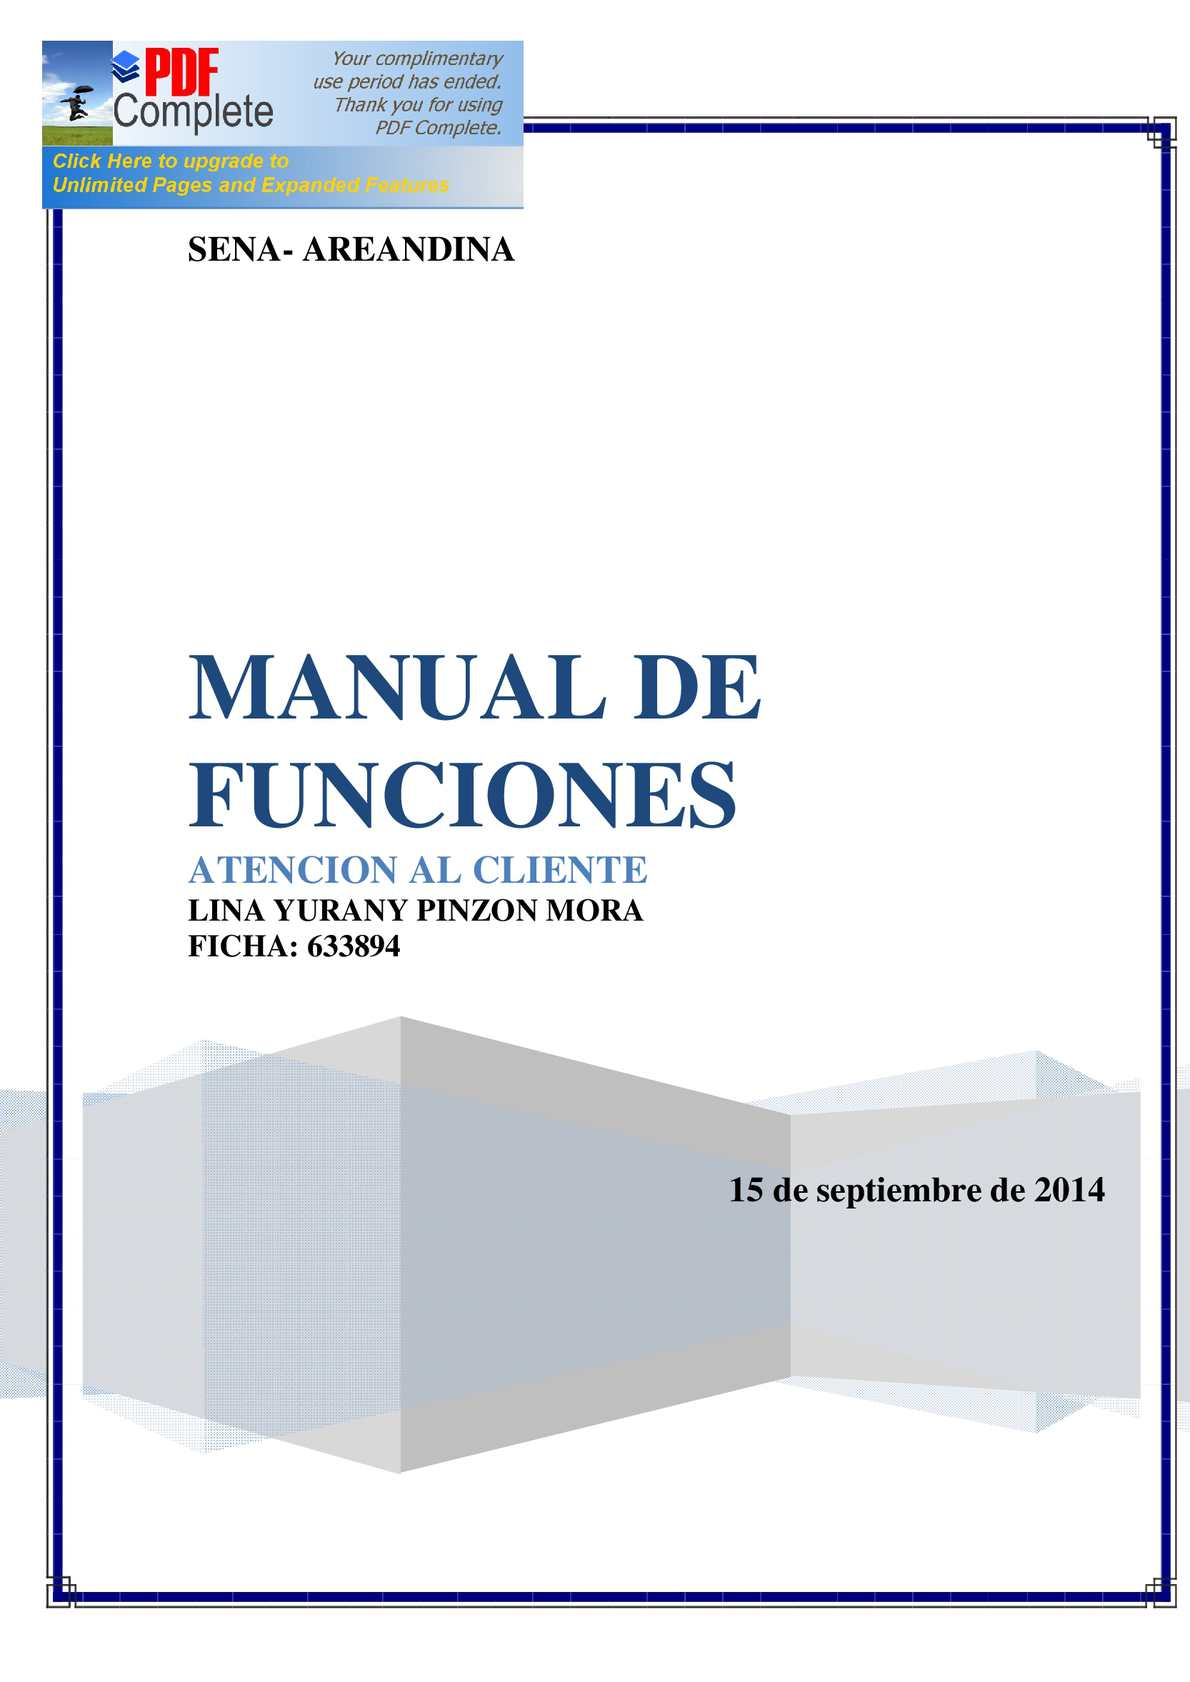 Calam o manual de funciones for Manual de acuicultura pdf